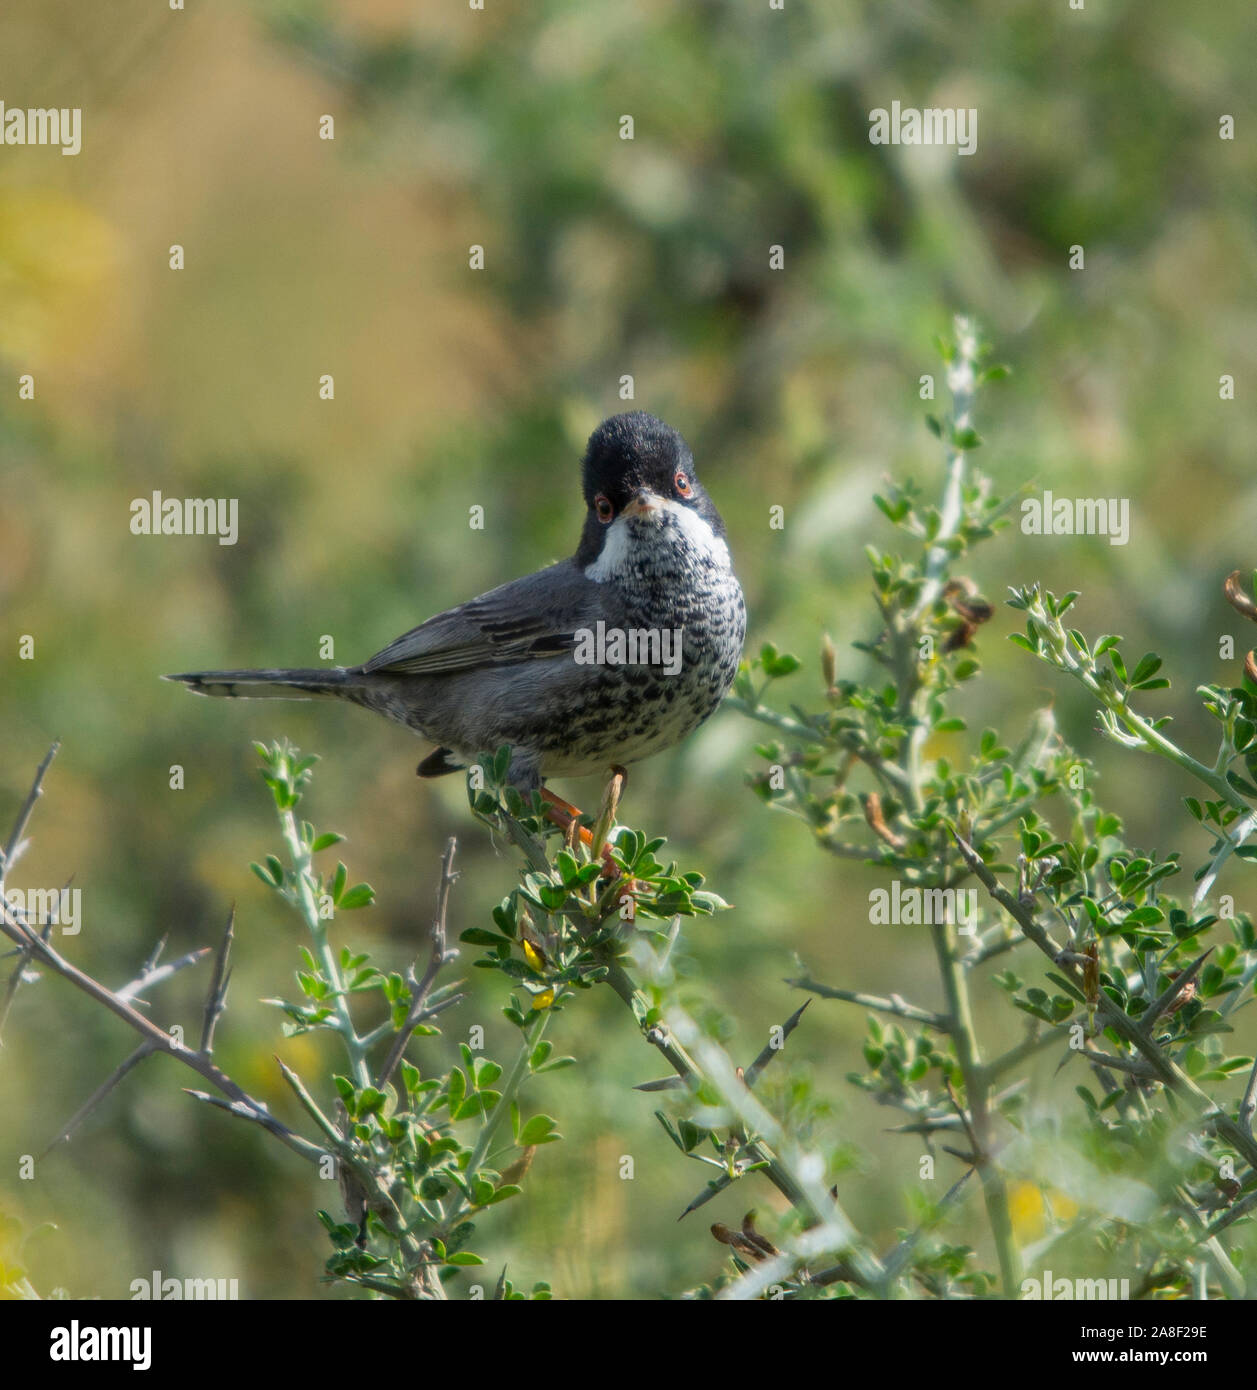 Male Cyprus Warbler (Sylvia melanothorax) in a small bush on the Island of Cyprus. Stock Photo